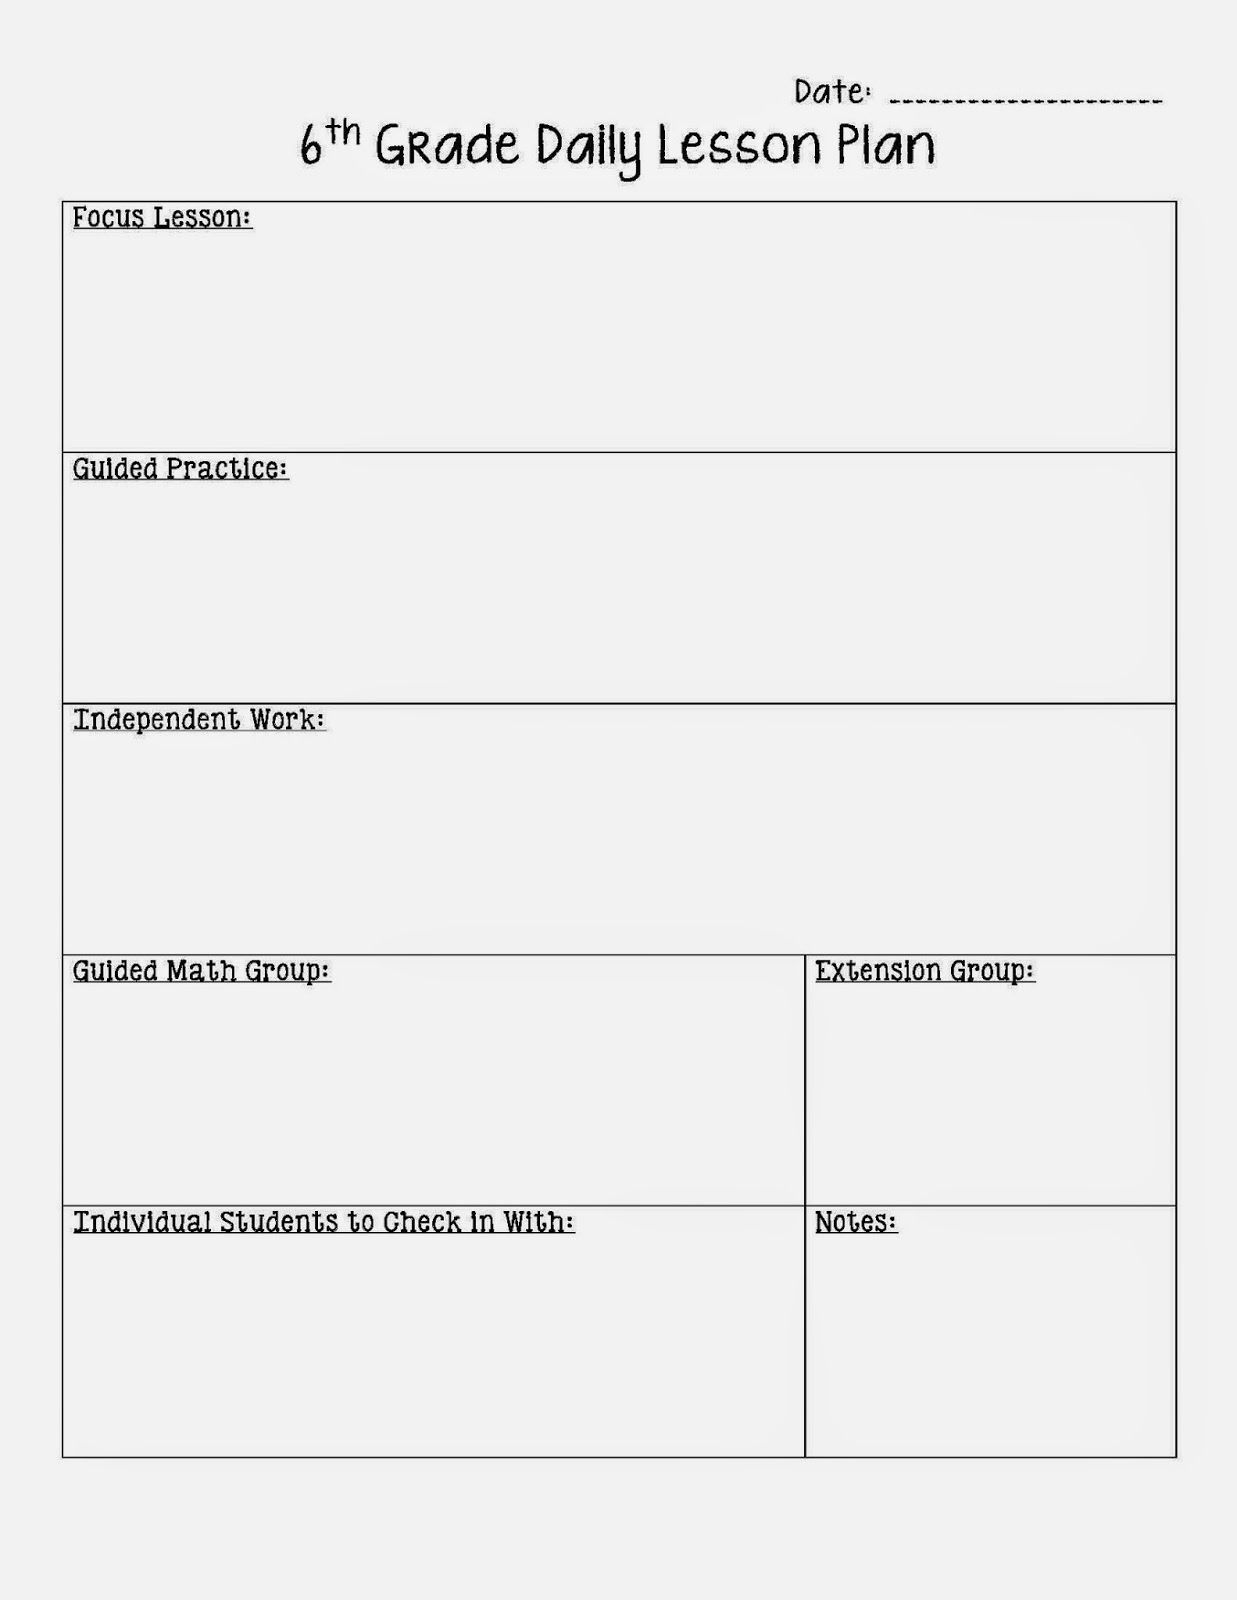 002 Stunning Free Printable Lesson Plan Template For High School Photo Full